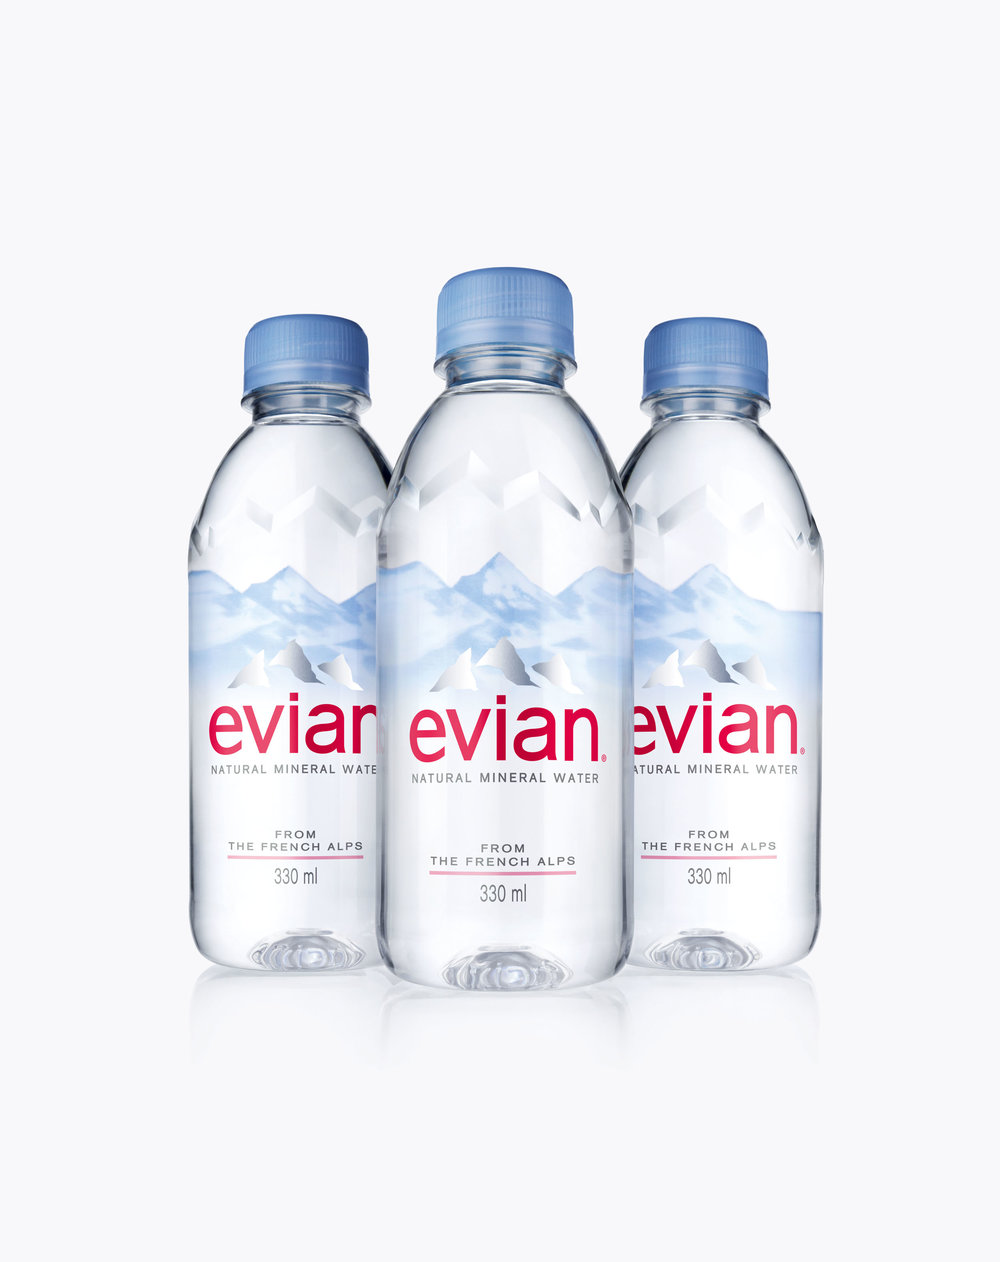 Evian-330ml-3Packs-3.jpg